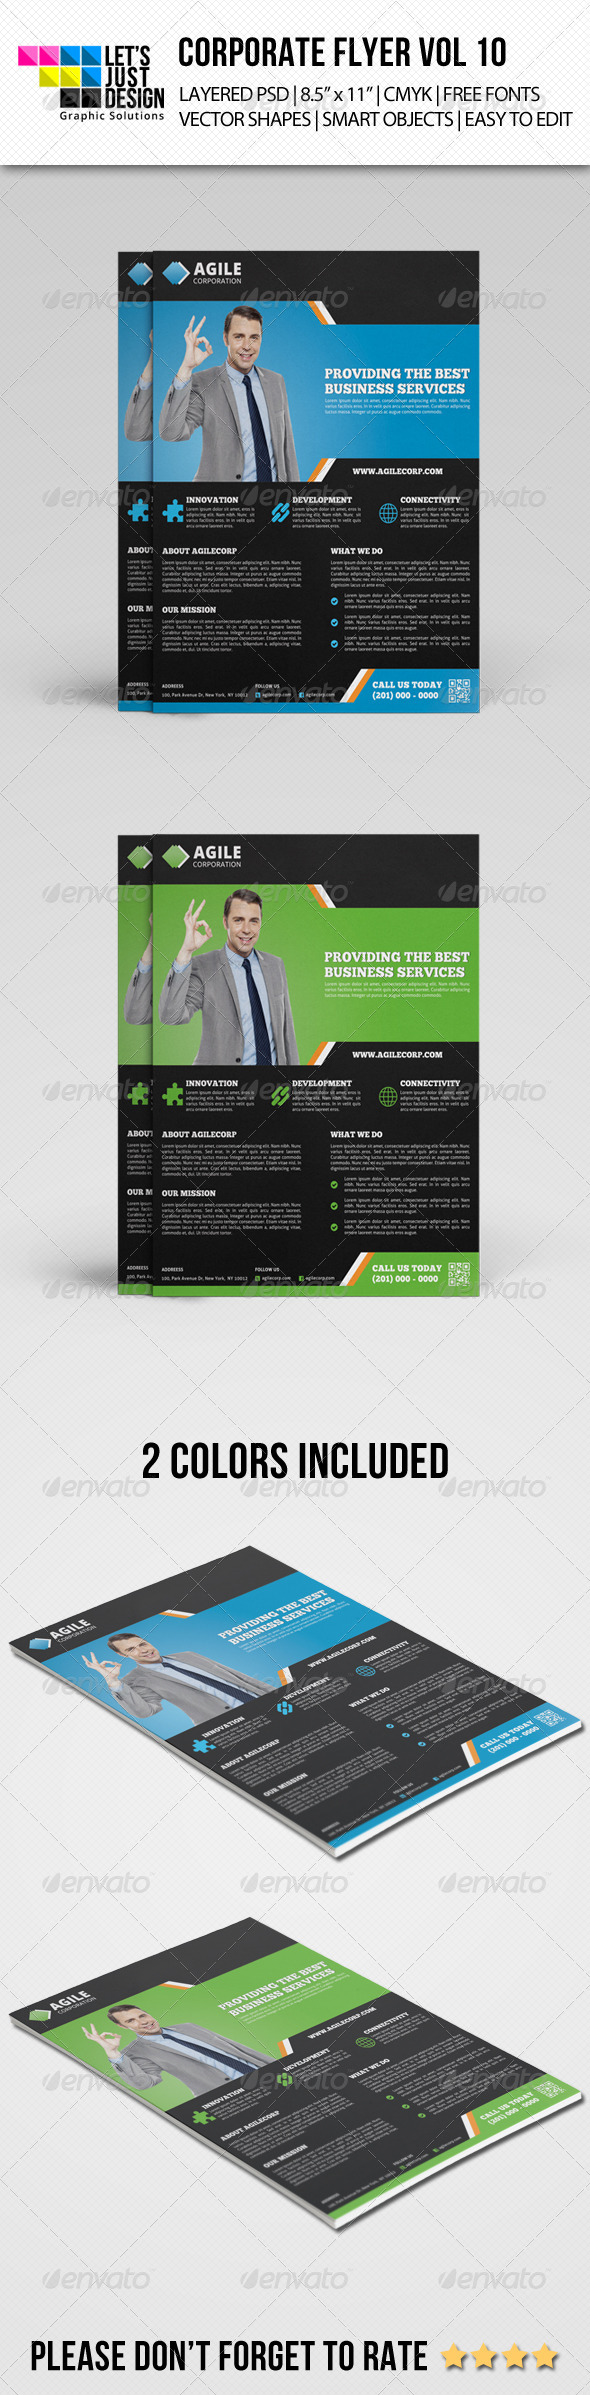 Corporate Flyer Template Vol 10